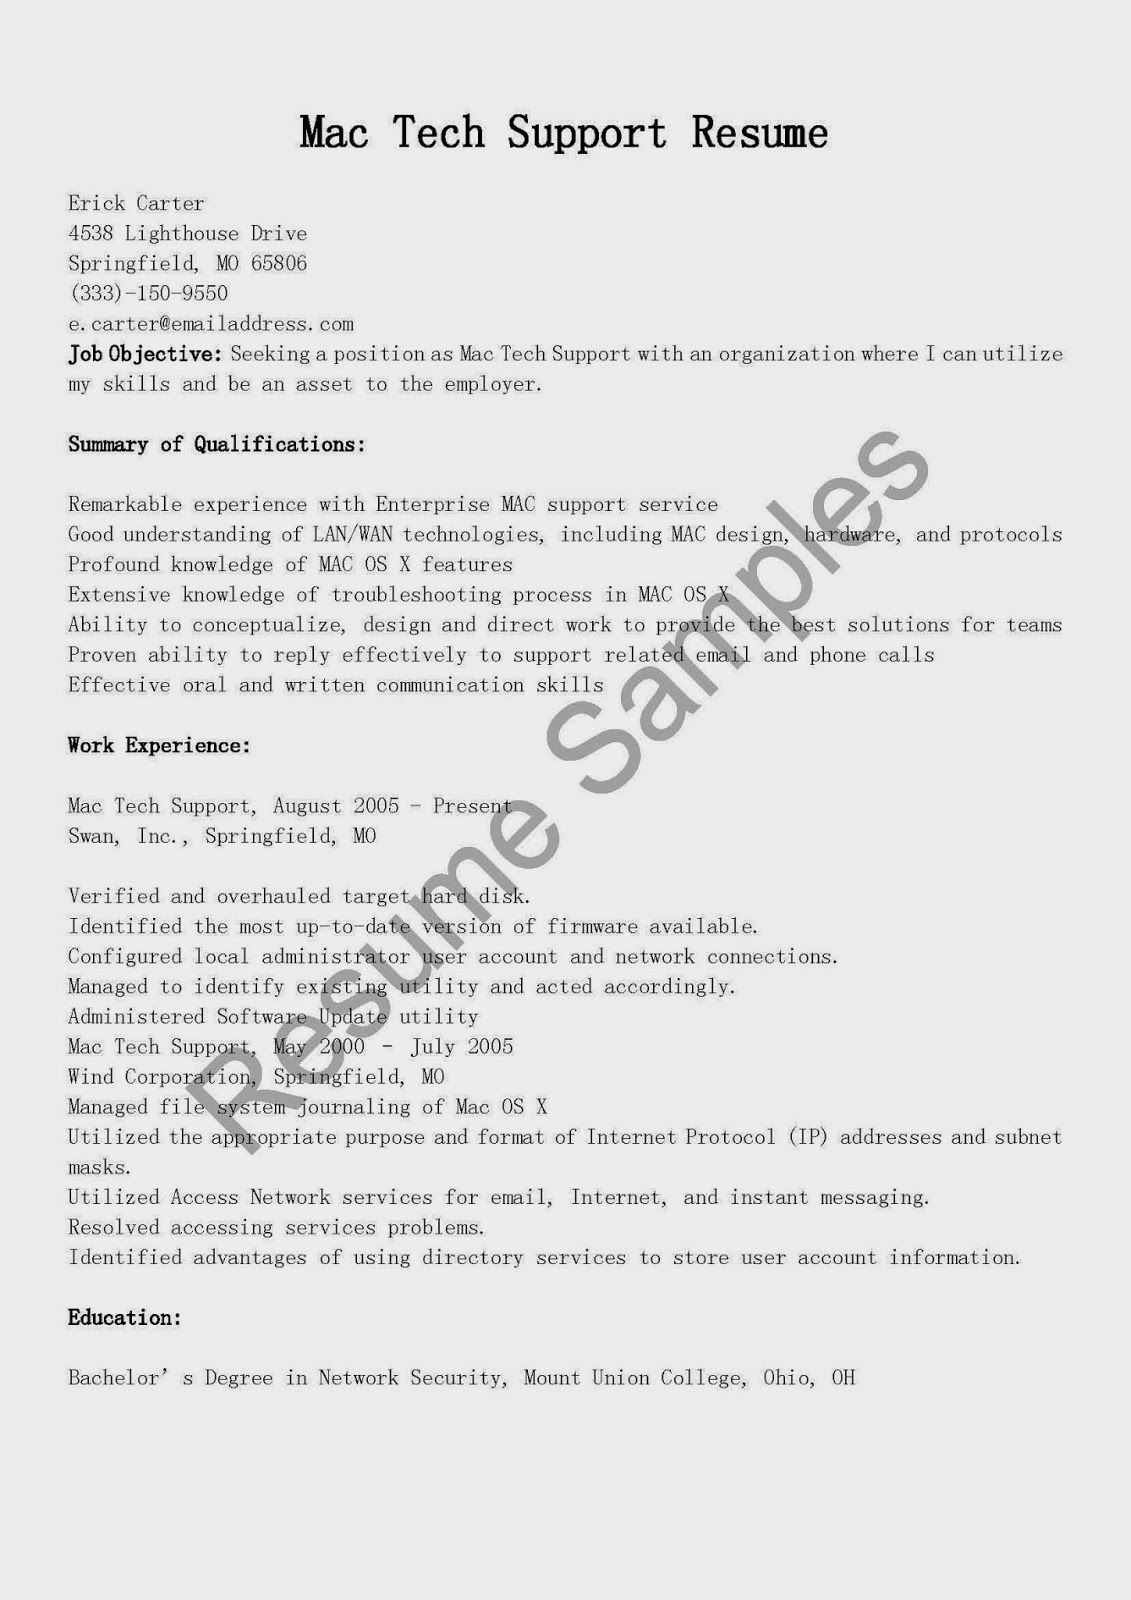 Mac Tech Support Resume Sample